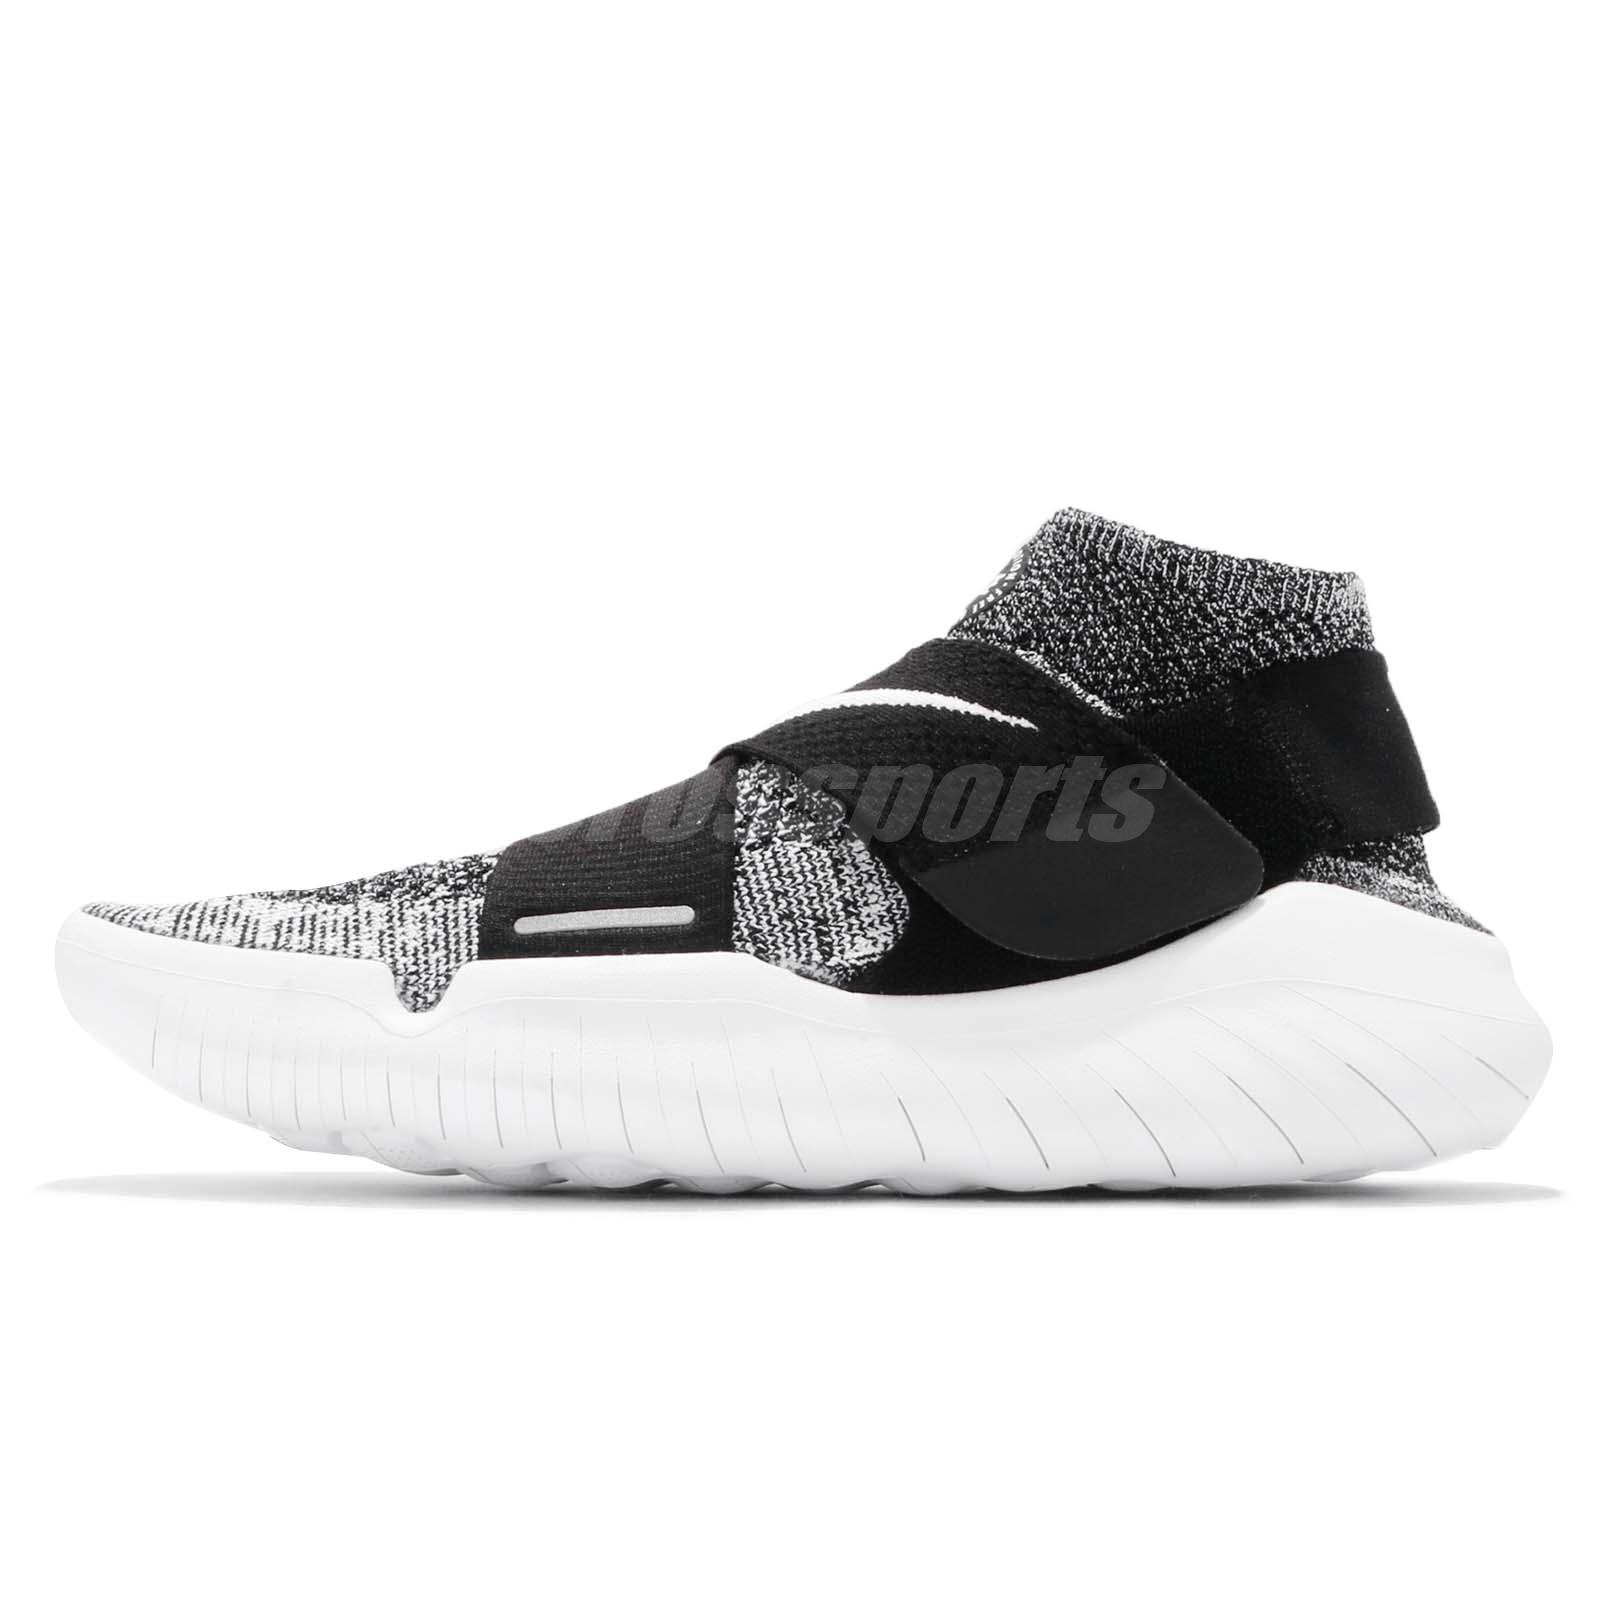 the best attitude cab8f 82474 Nike Free RN Motion FK 2018 Run Flyknit Black White Men Running Shoes  942840-001